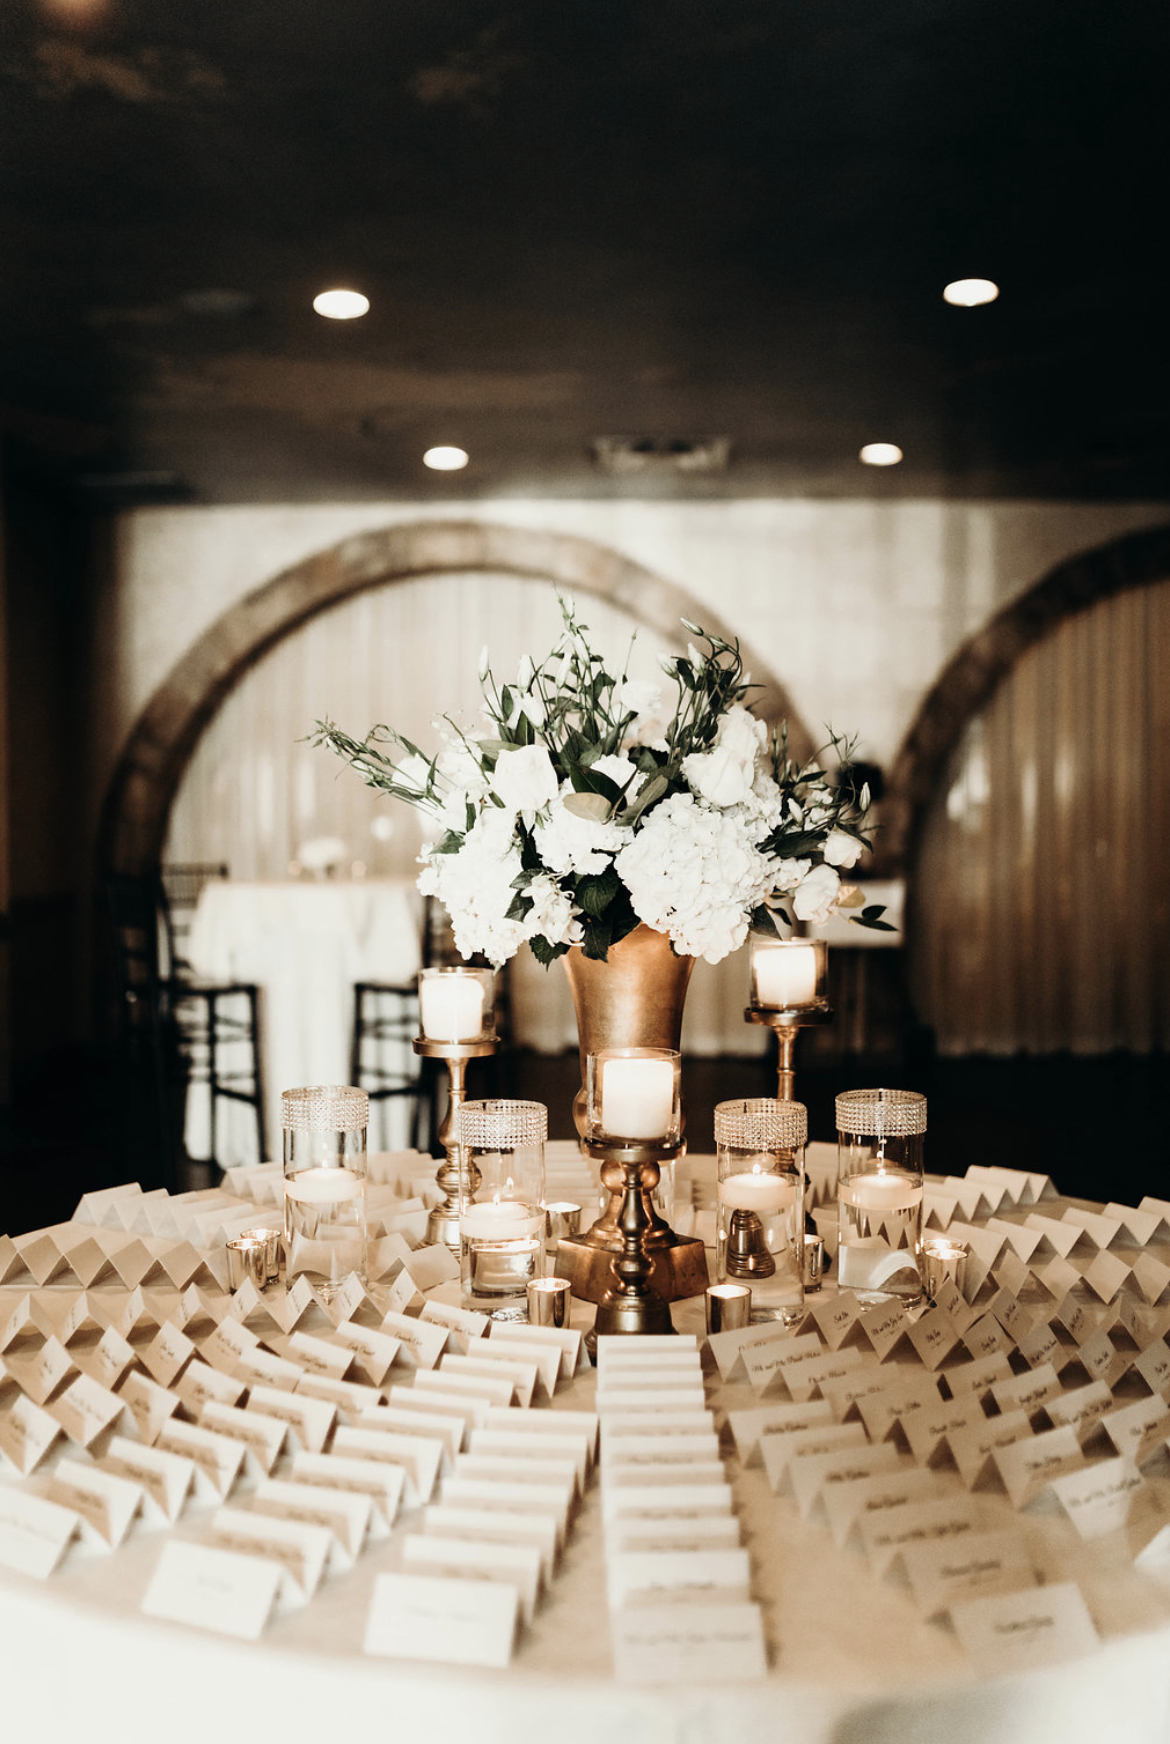 Valerie-and-TJ-McConnell-Wedding-Coordination-by-Cassandra-Clair-Event-Prep-Pittsburgh-Wedding-52